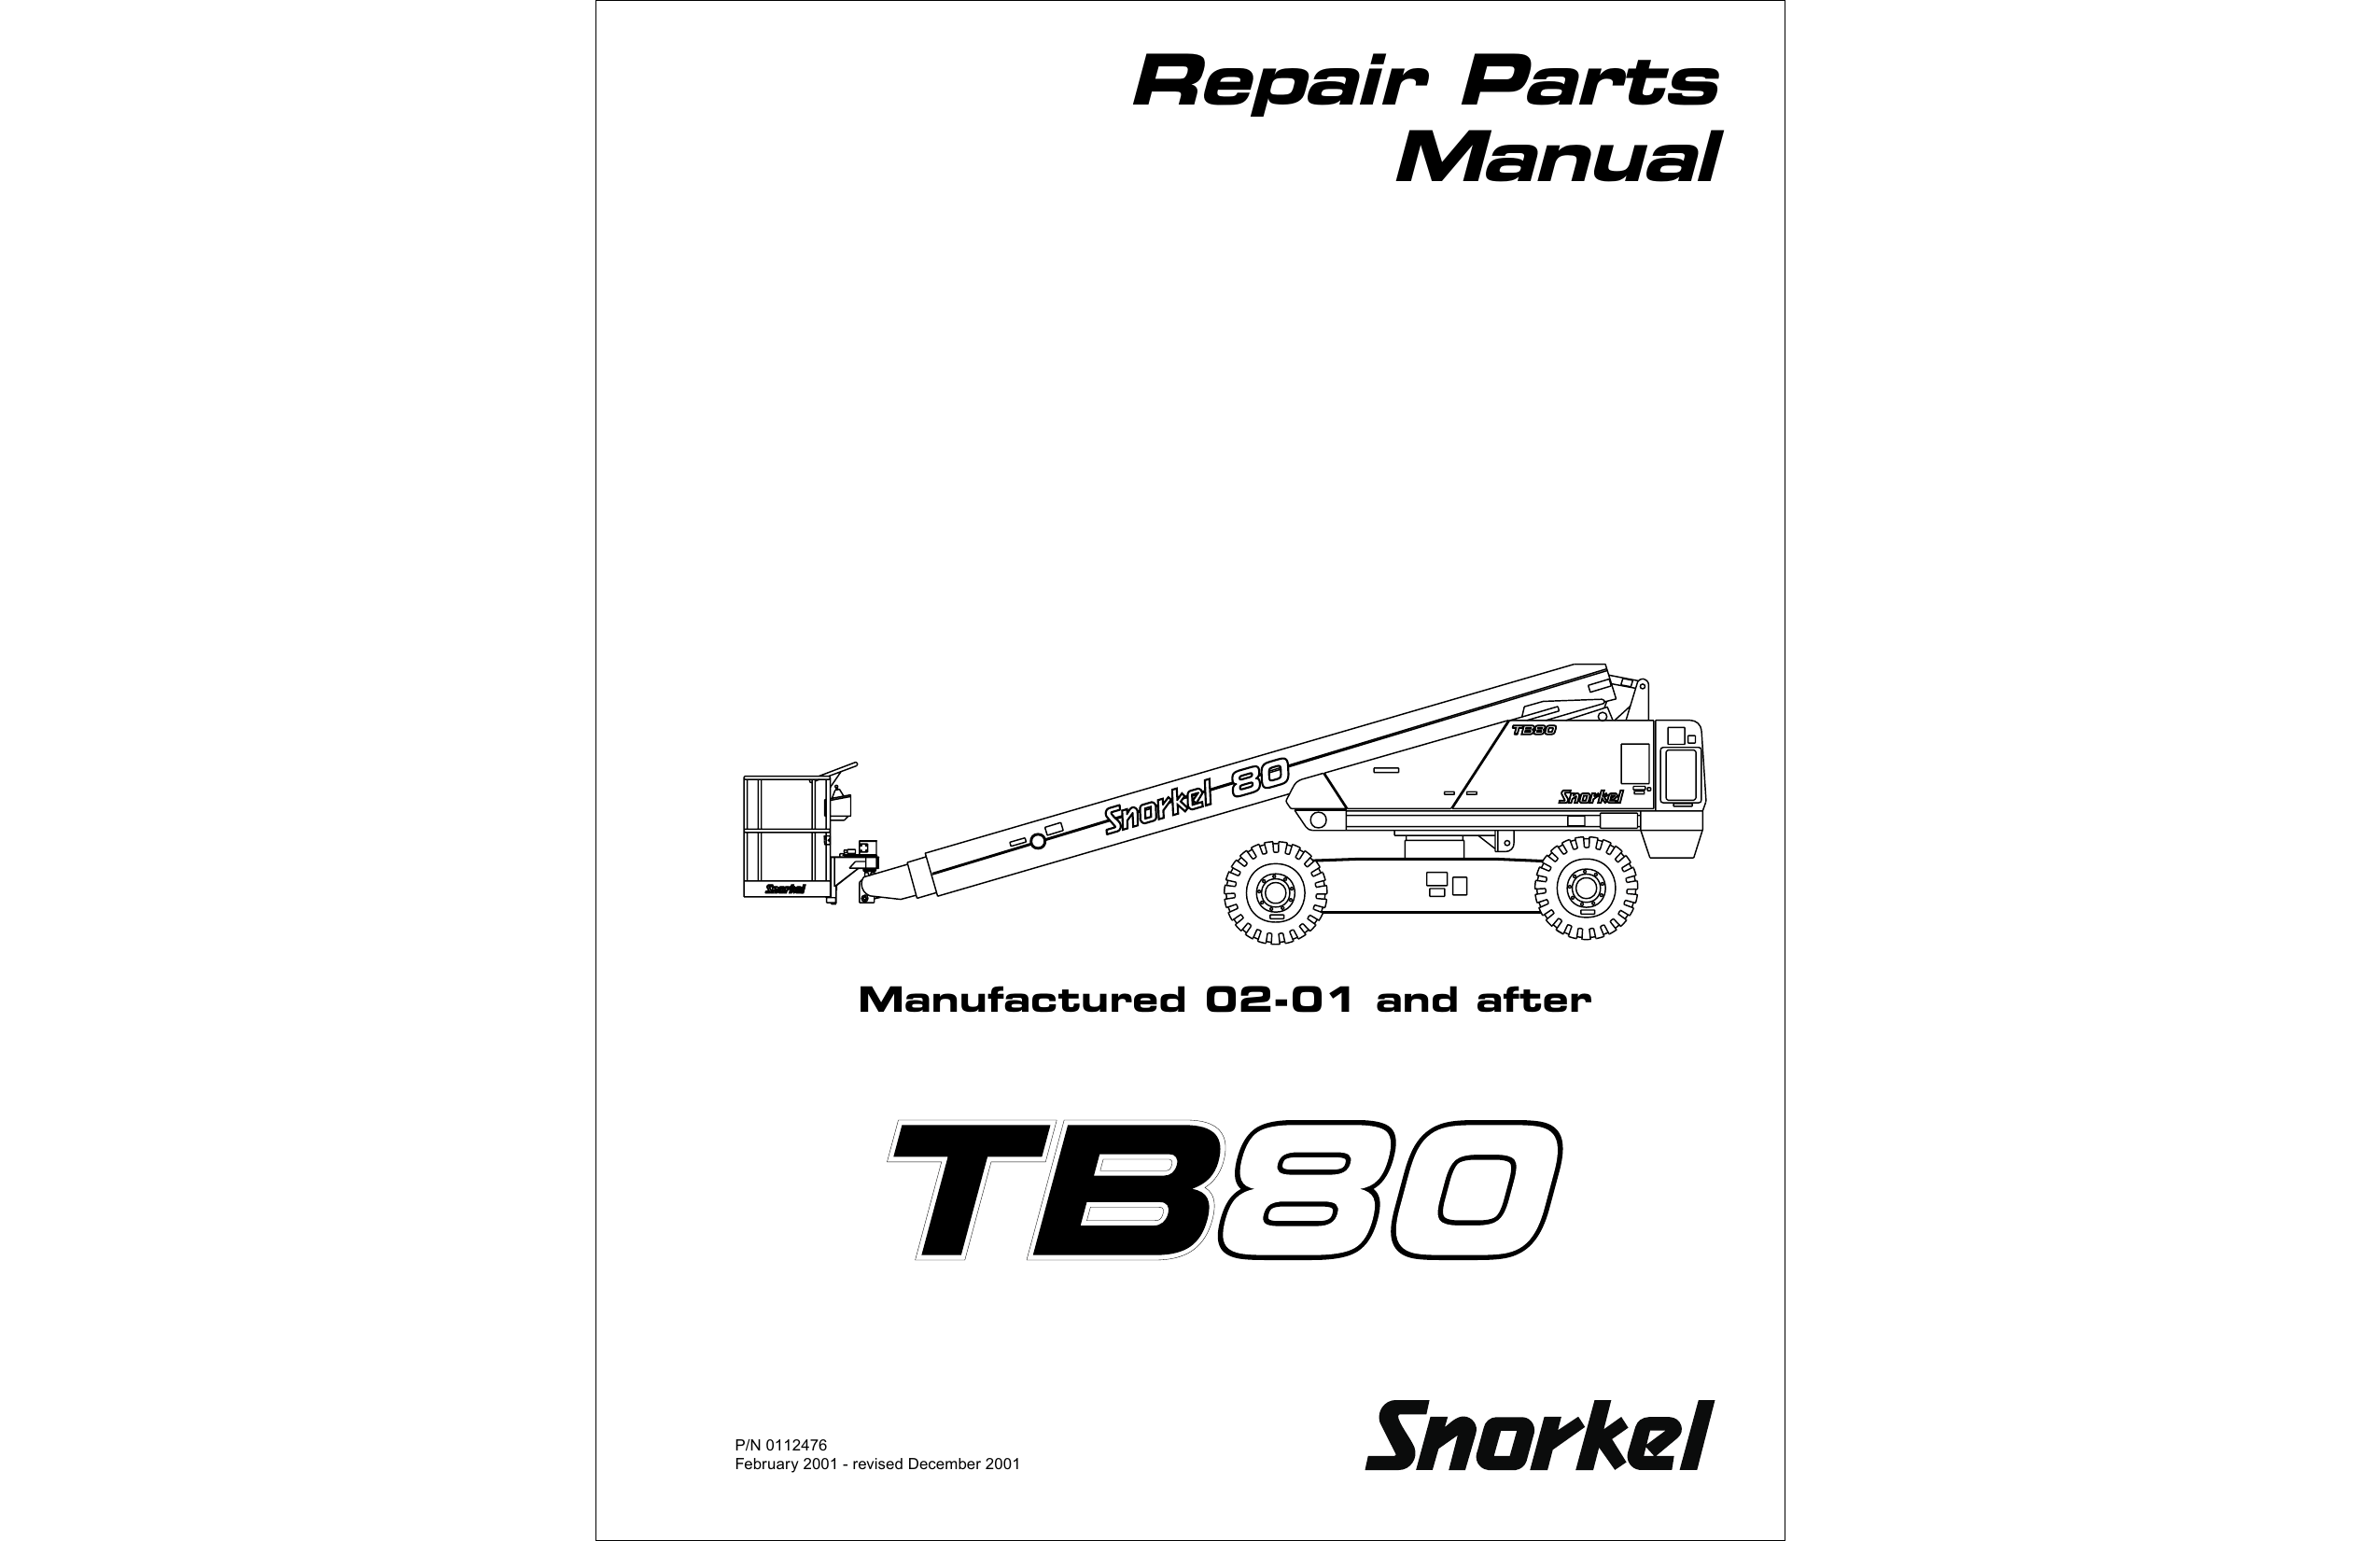 Repair Parts Manual Manufactured 02-01 and after P/N